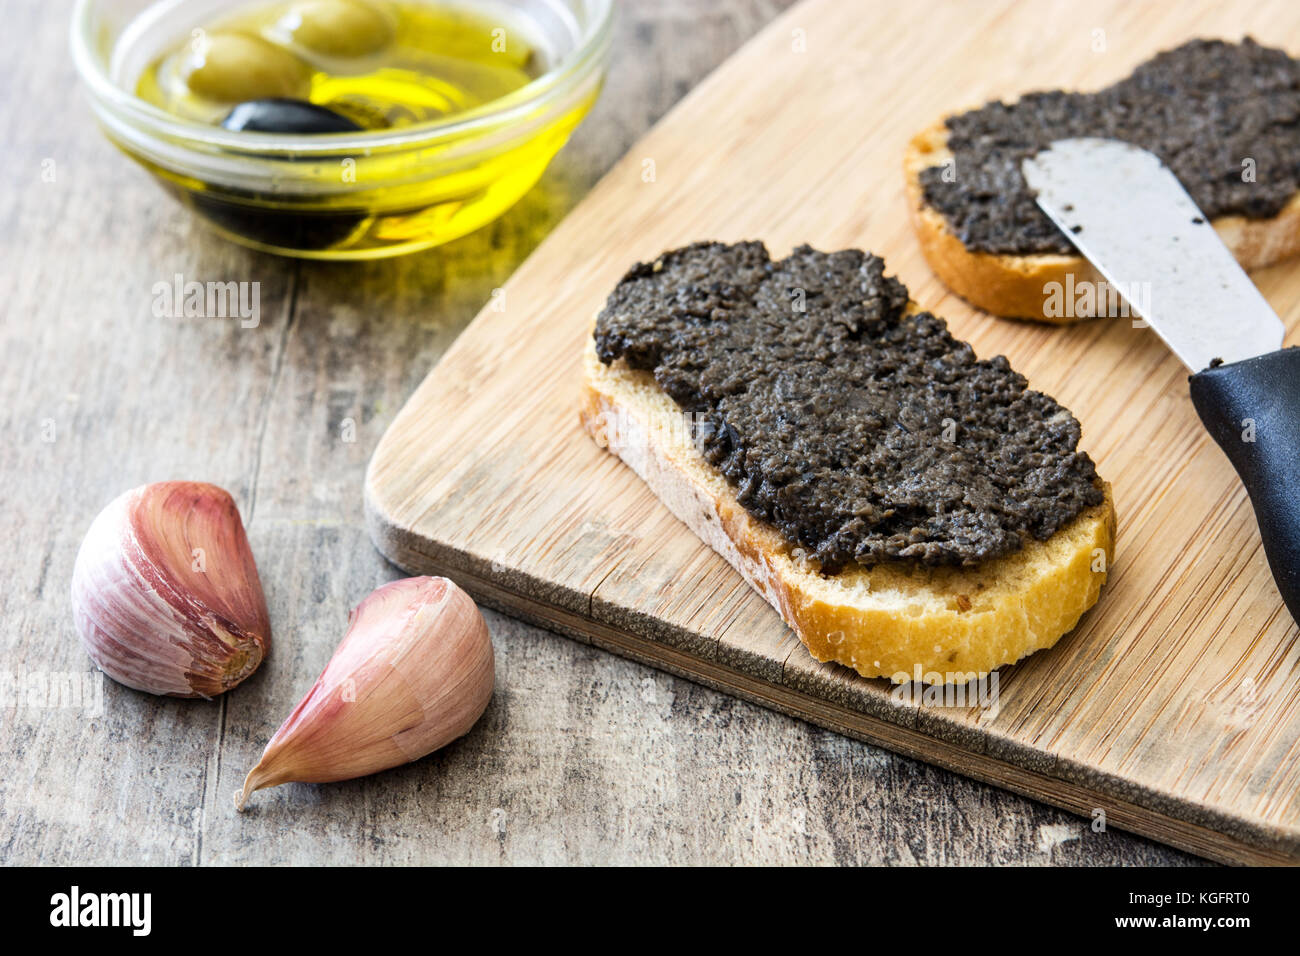 Black olive tapenade with anchovies, garlic and olive oil in toast on wooden table - Stock Image